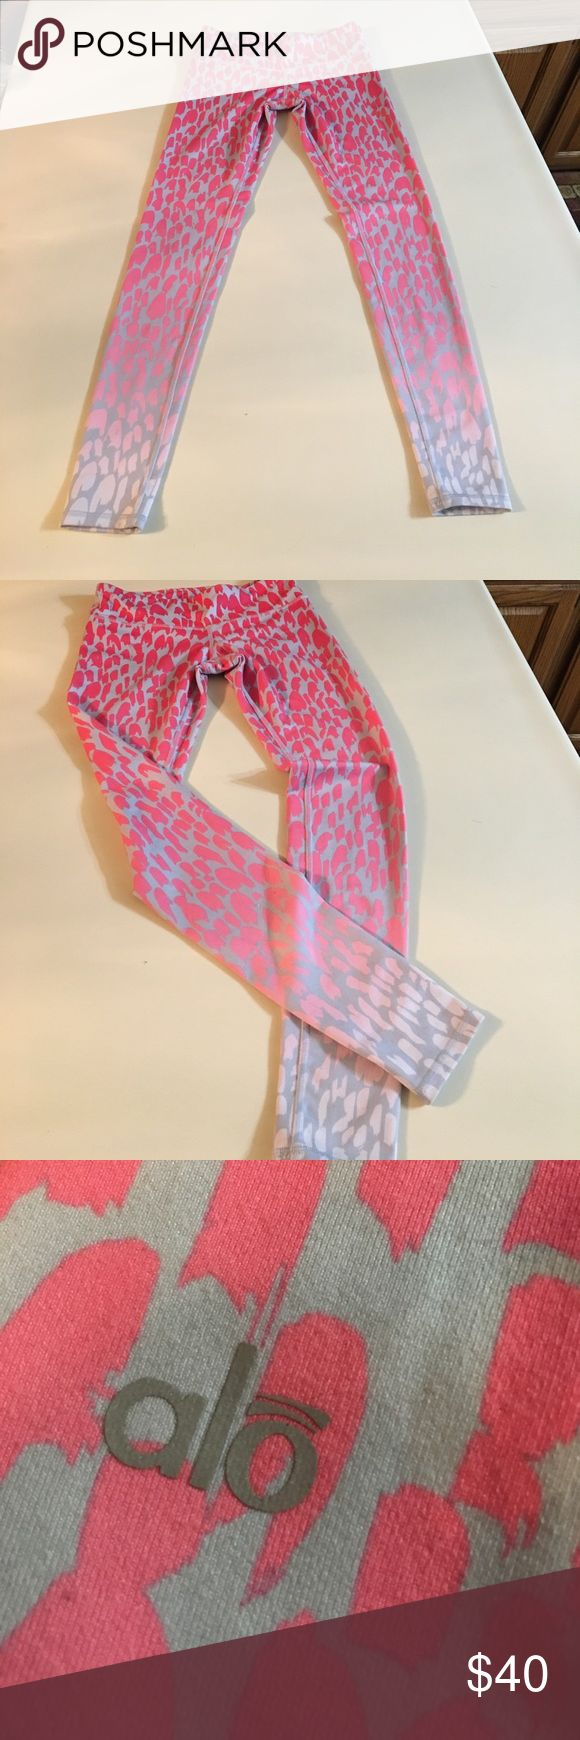 ALO Yoga Printed Pink Leggings Very soft and comfortable work out leggings! Cute ombré cheetah print, pink and gray. Size small. ALO Yoga Pants Leggings